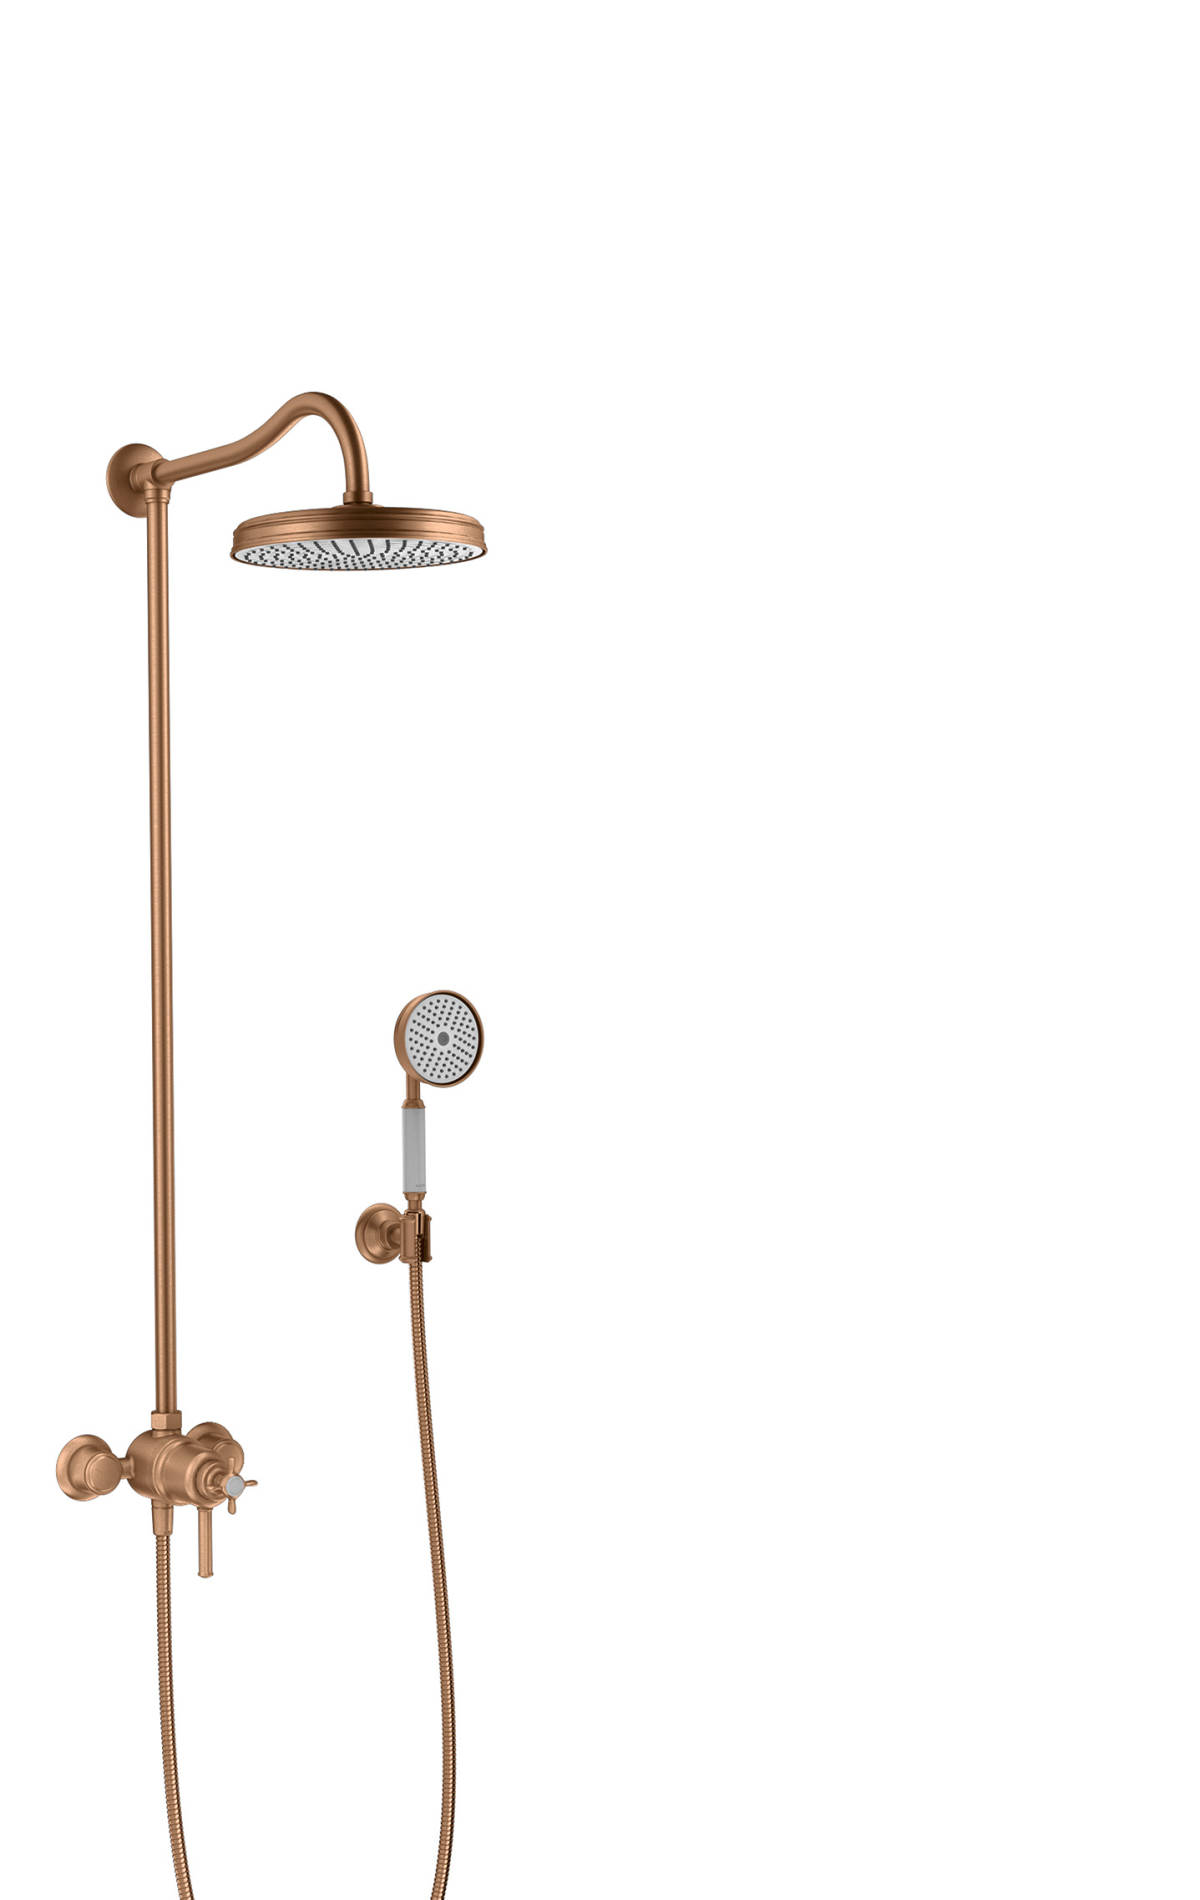 Showerpipe with thermostat and overhead shower 1jet, Brushed Bronze, 16570140